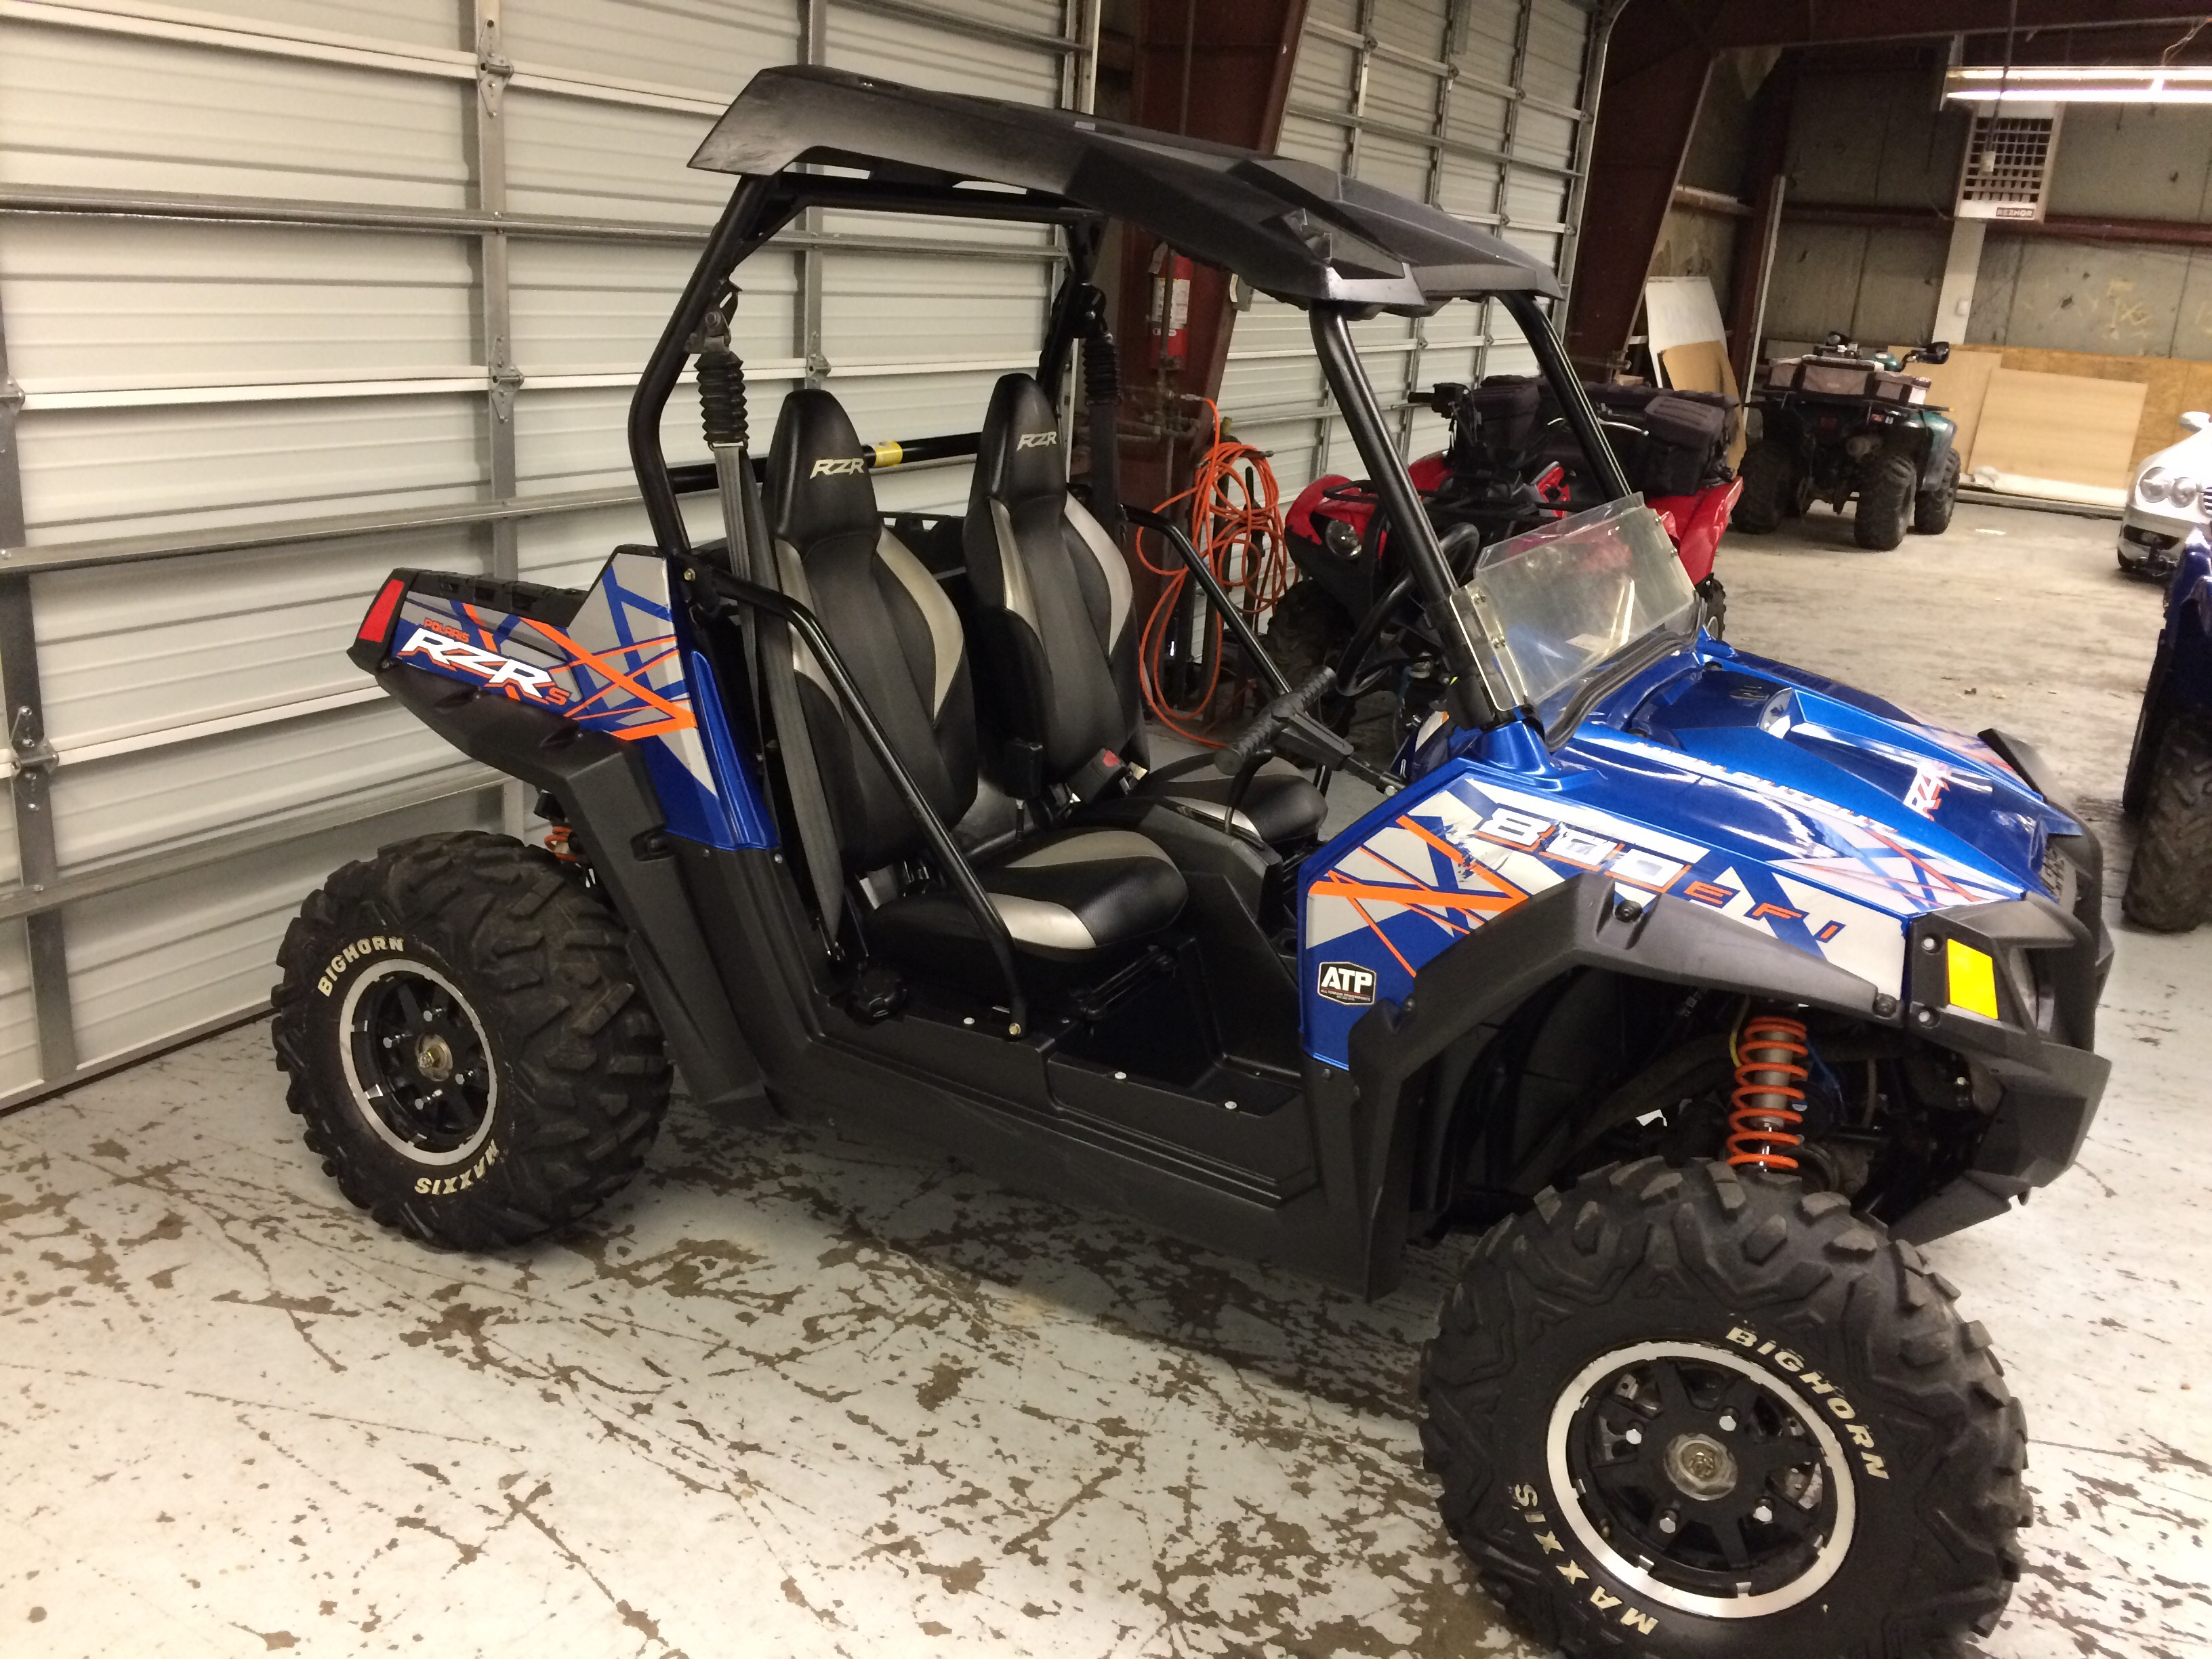 2013 Polaris RZR 800 S limited edition 2200 miles, stereo